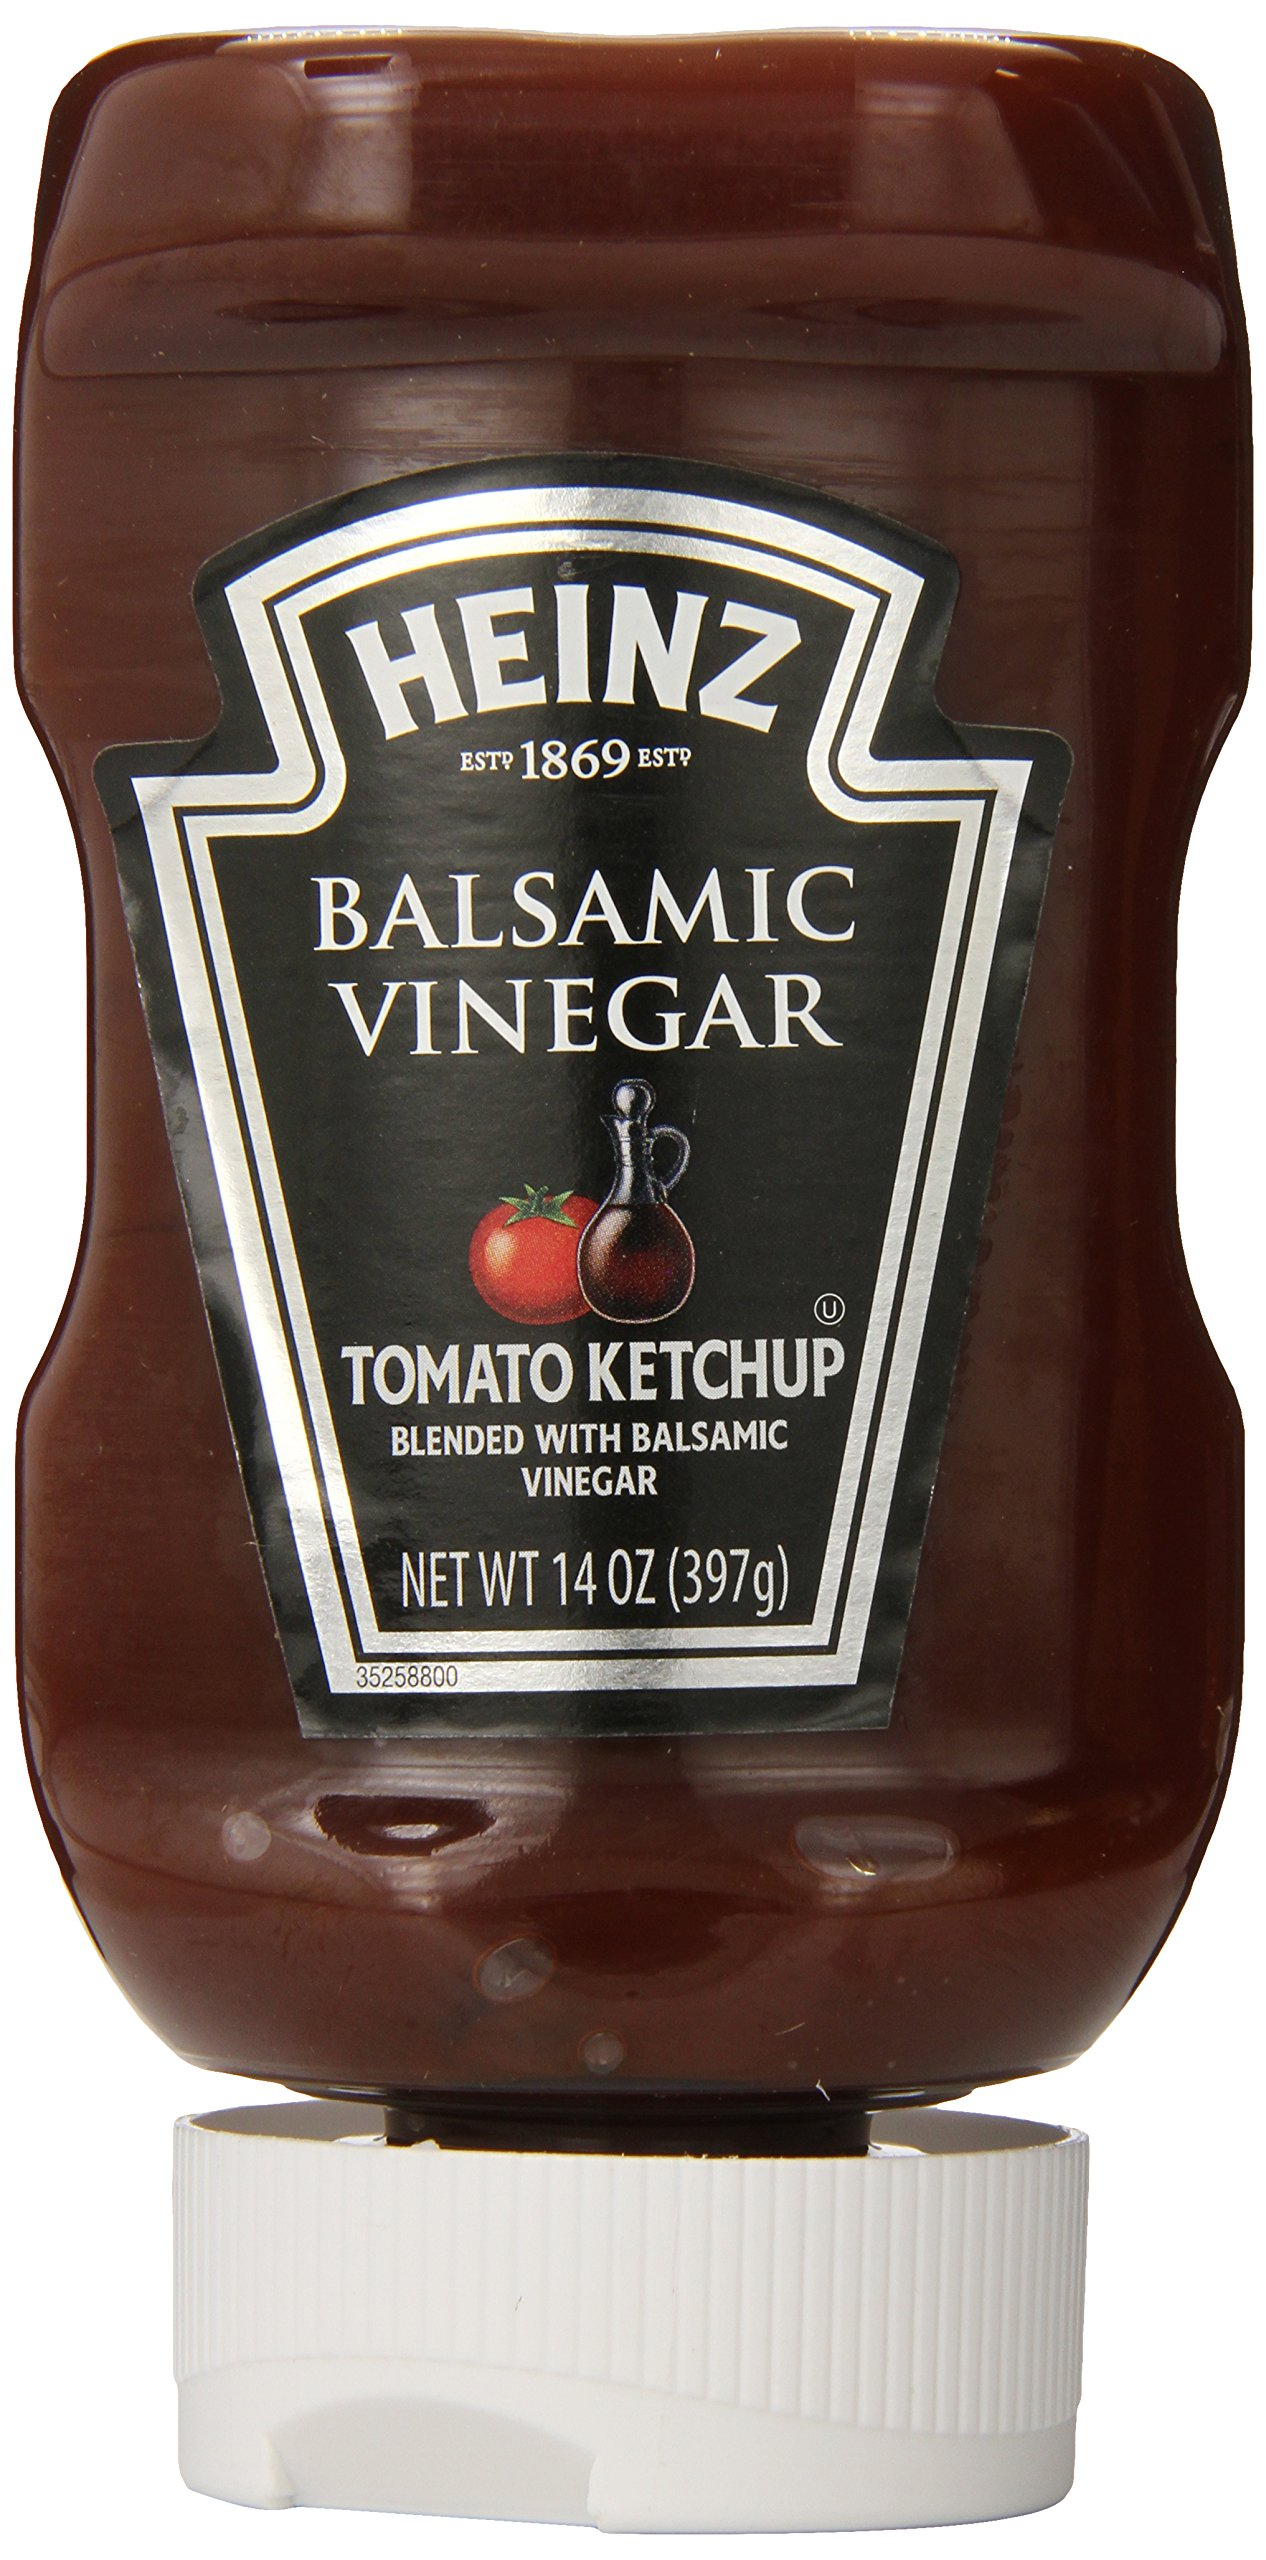 Cucina & Amore White Balsamic Vinegar Cheap Heinz Balsamic Vinegar Find Heinz Balsamic Vinegar Deals On